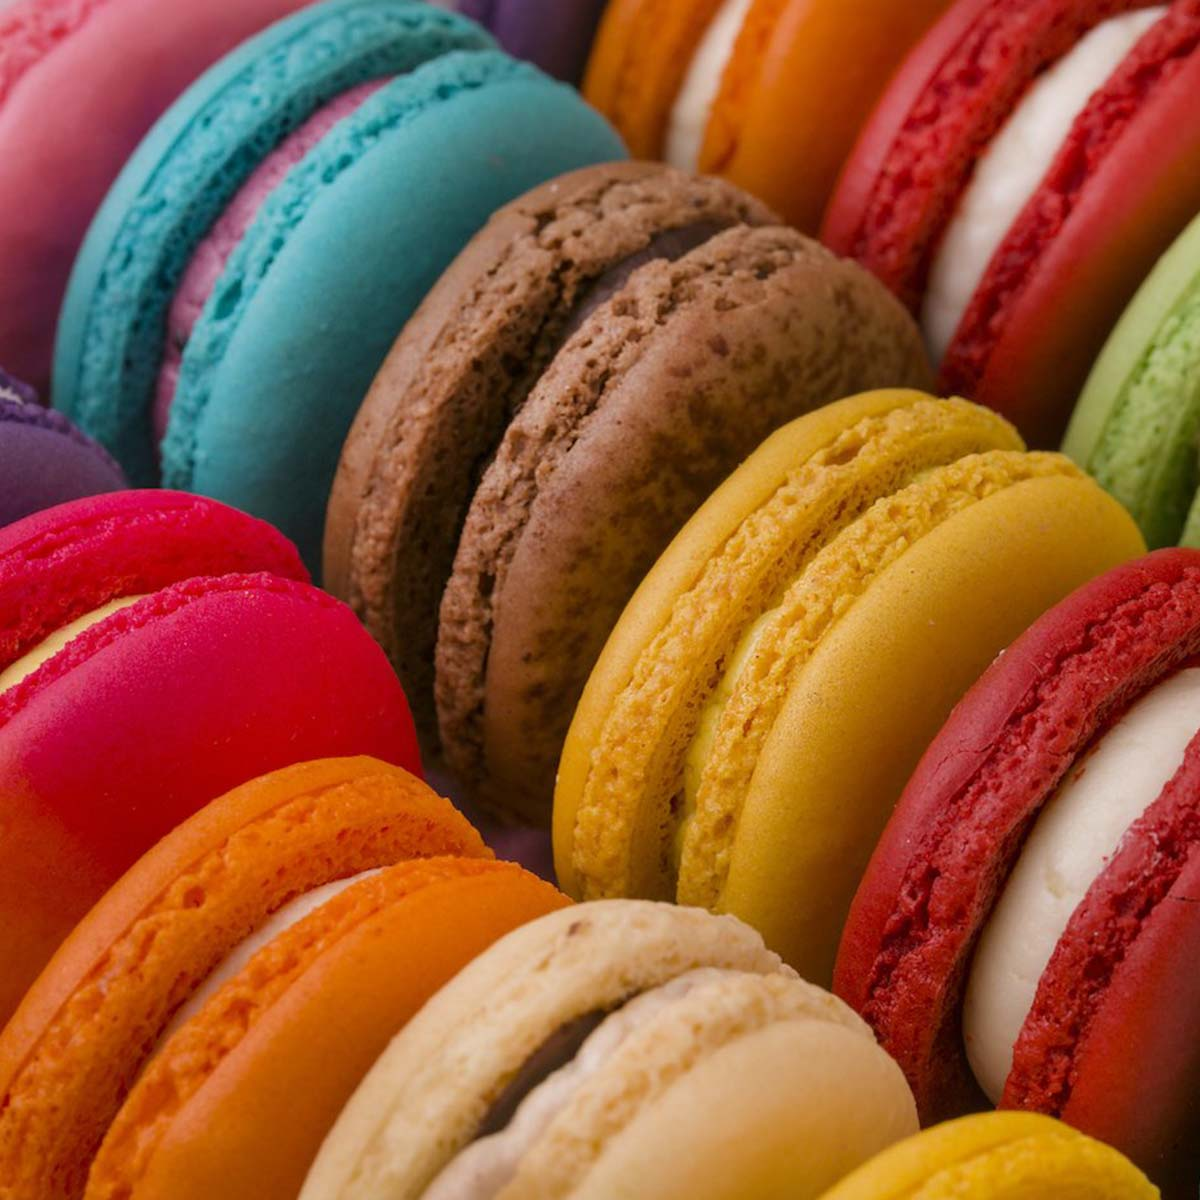 image of Macarons from Macaron Queen